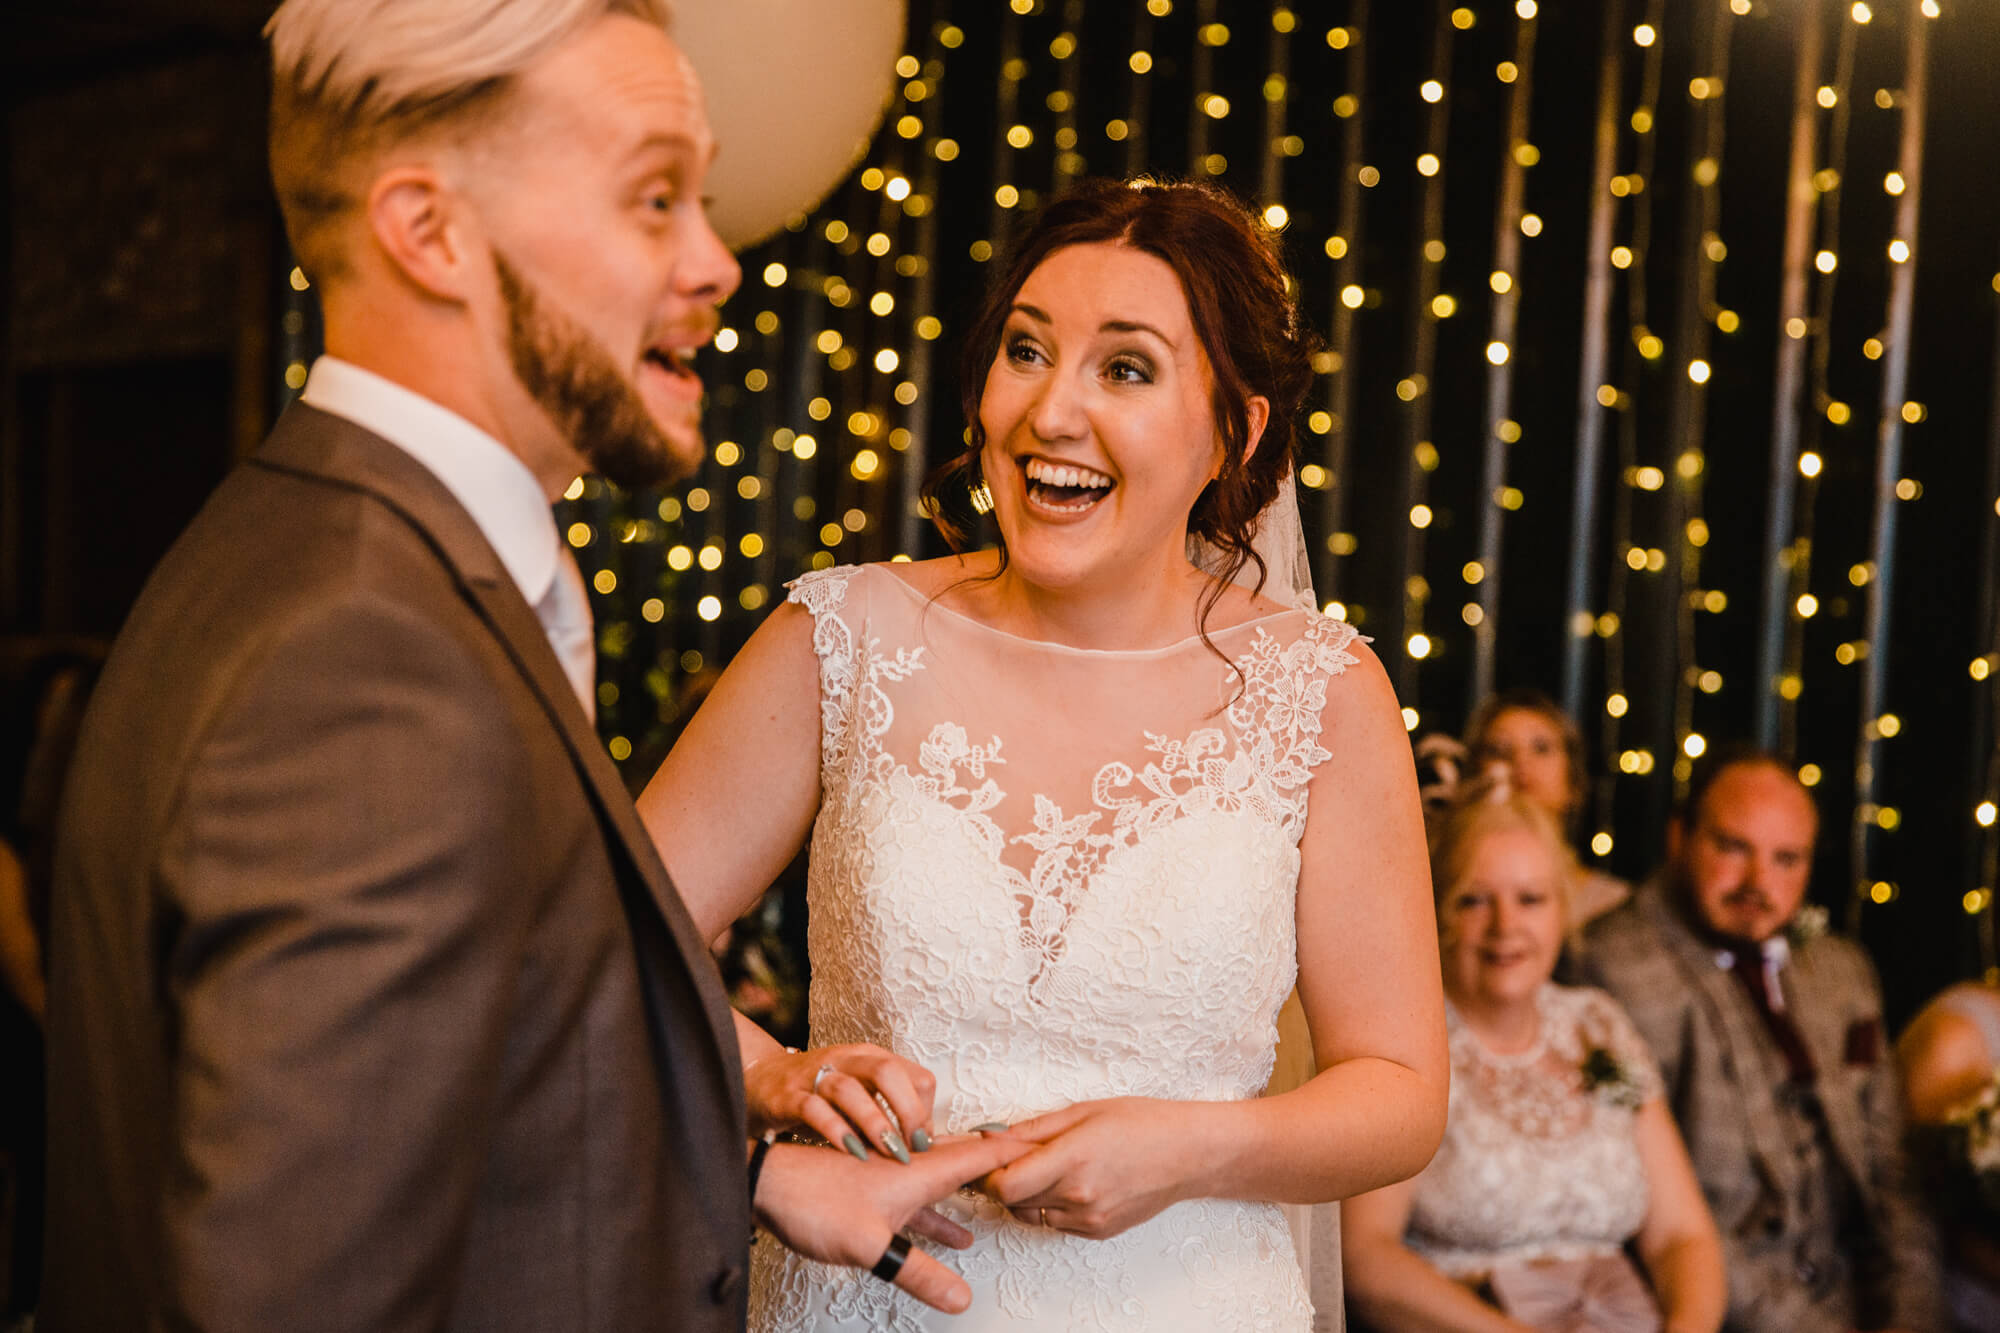 bride laughing at groom as during spoken vows